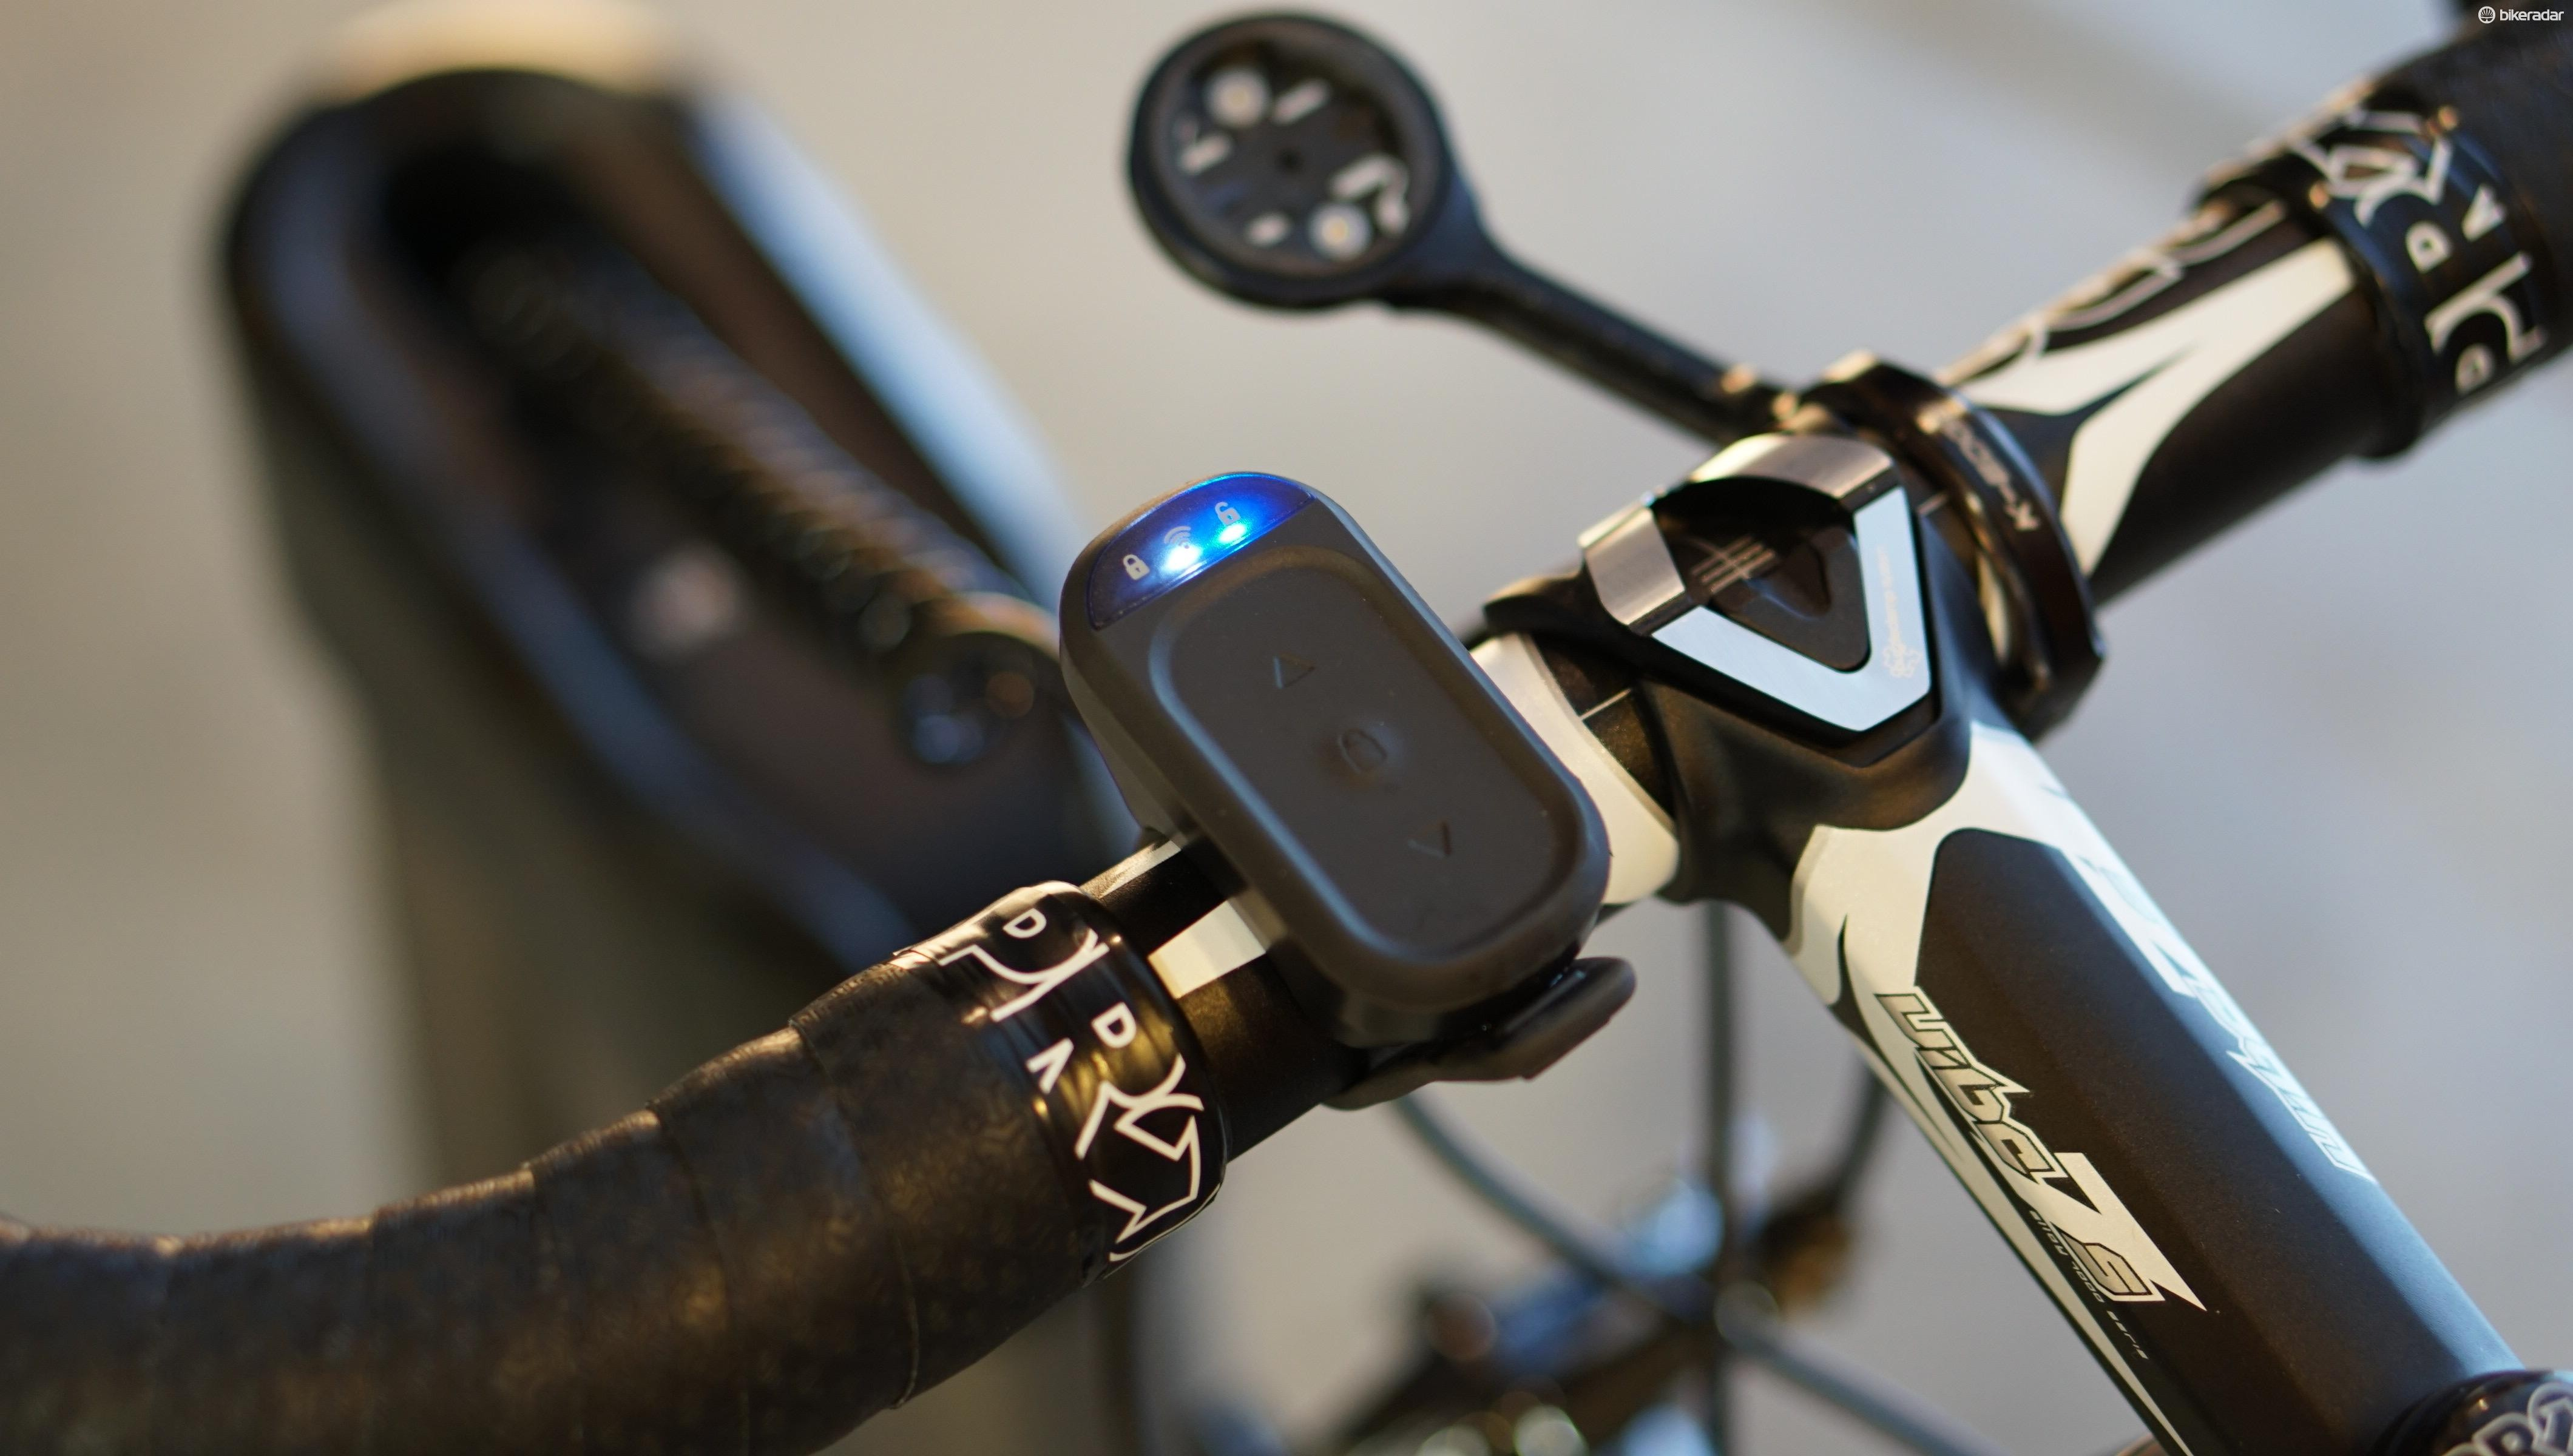 The remote can be used to manually raise or lower the bars